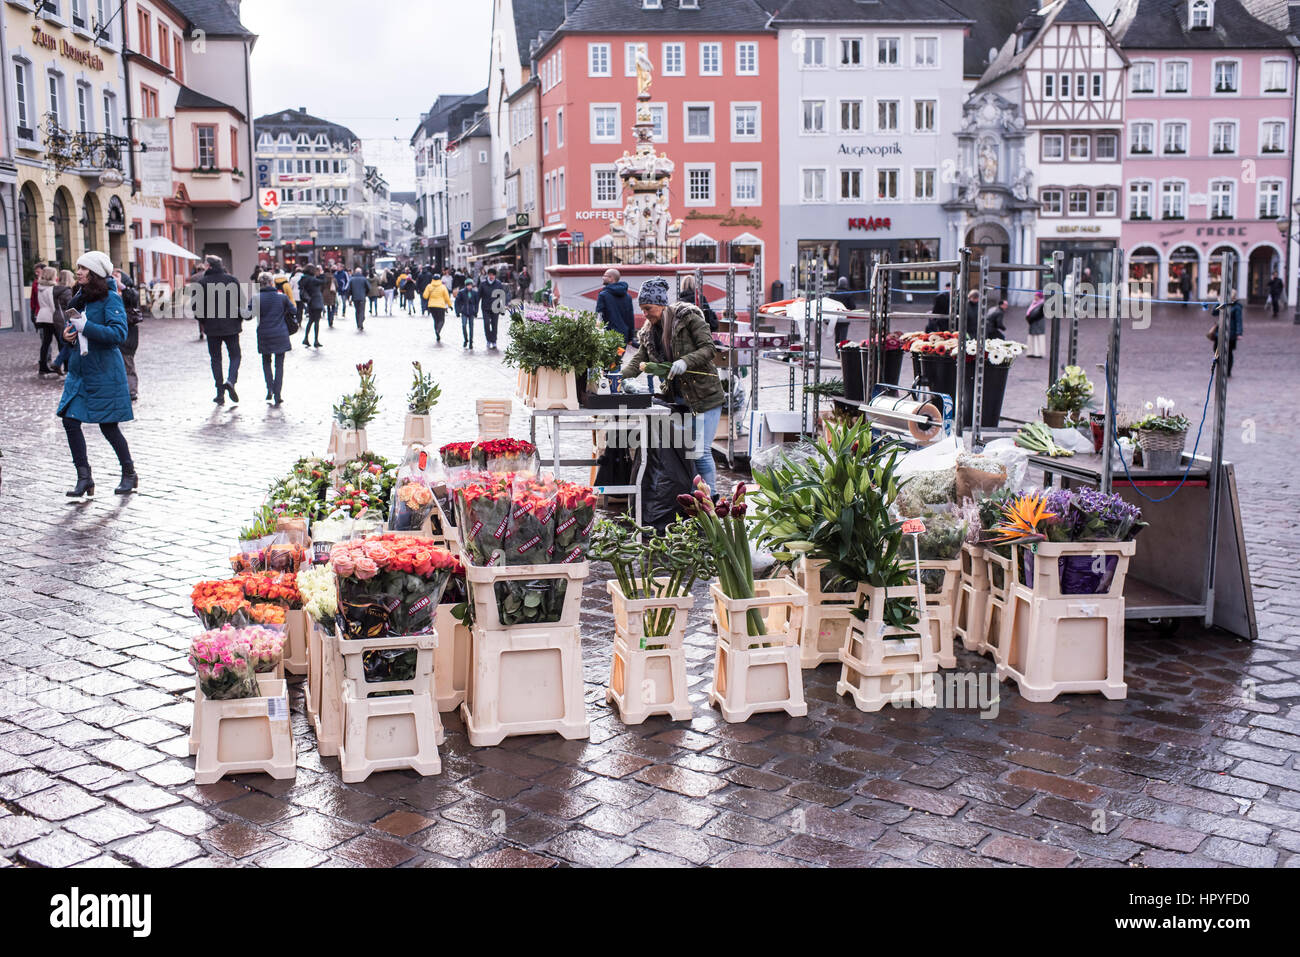 Trier,Germany- January 03, 2017: Dealers sell flowers on the market square. Tourists strolling through the square - Stock Image